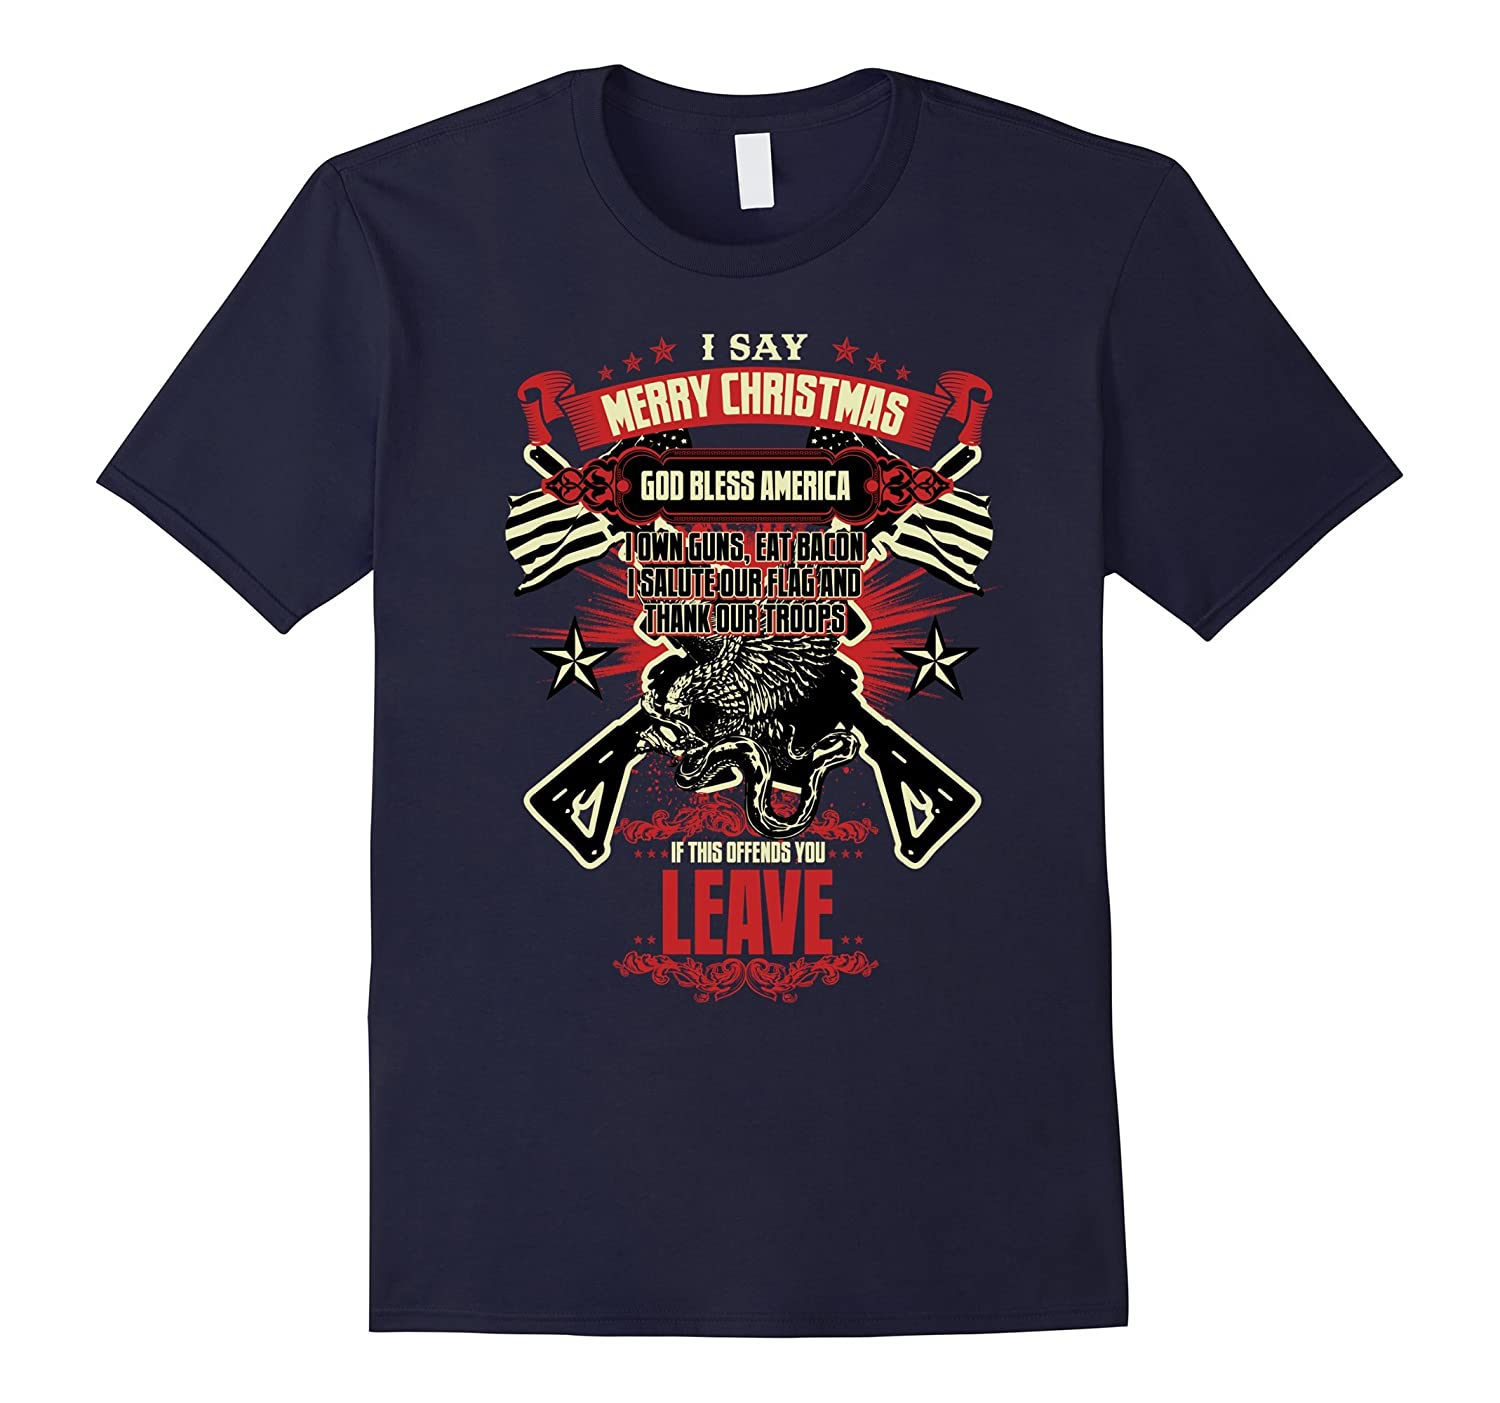 I Say Merry Christmas God Bless America T-shirt, Best Gift-CL